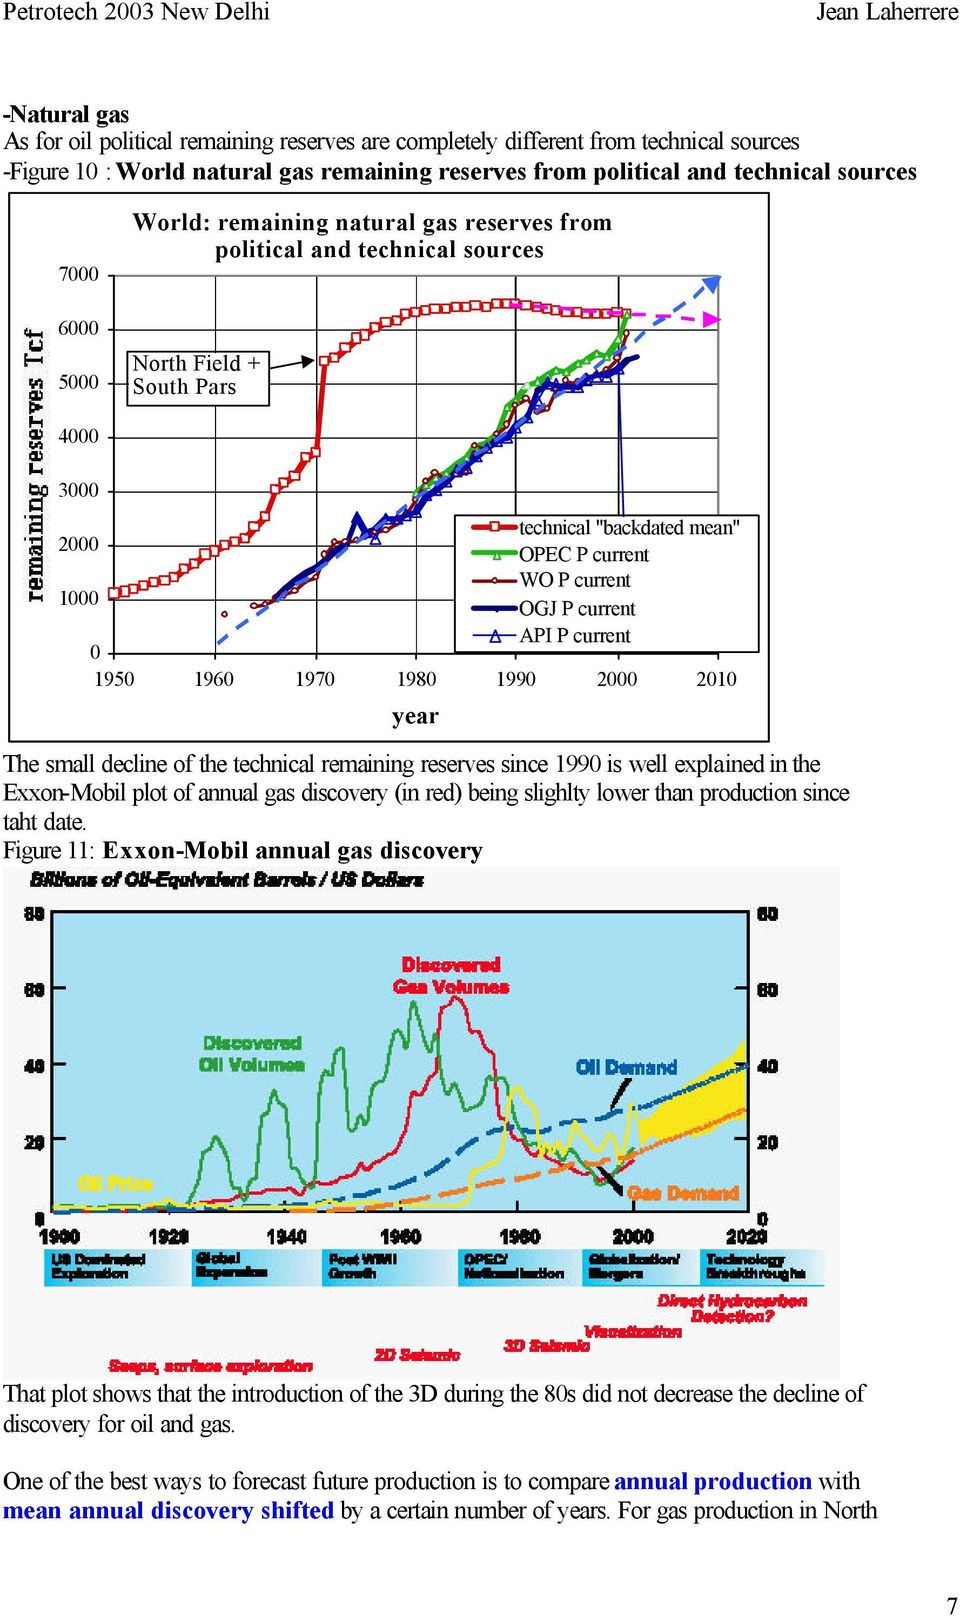 current API P current 195 196 197 198 199 2 21 The small decline of the technical remaining reserves since 199 is well explained in the Exxon-Mobil plot of annual gas discovery (in red) being